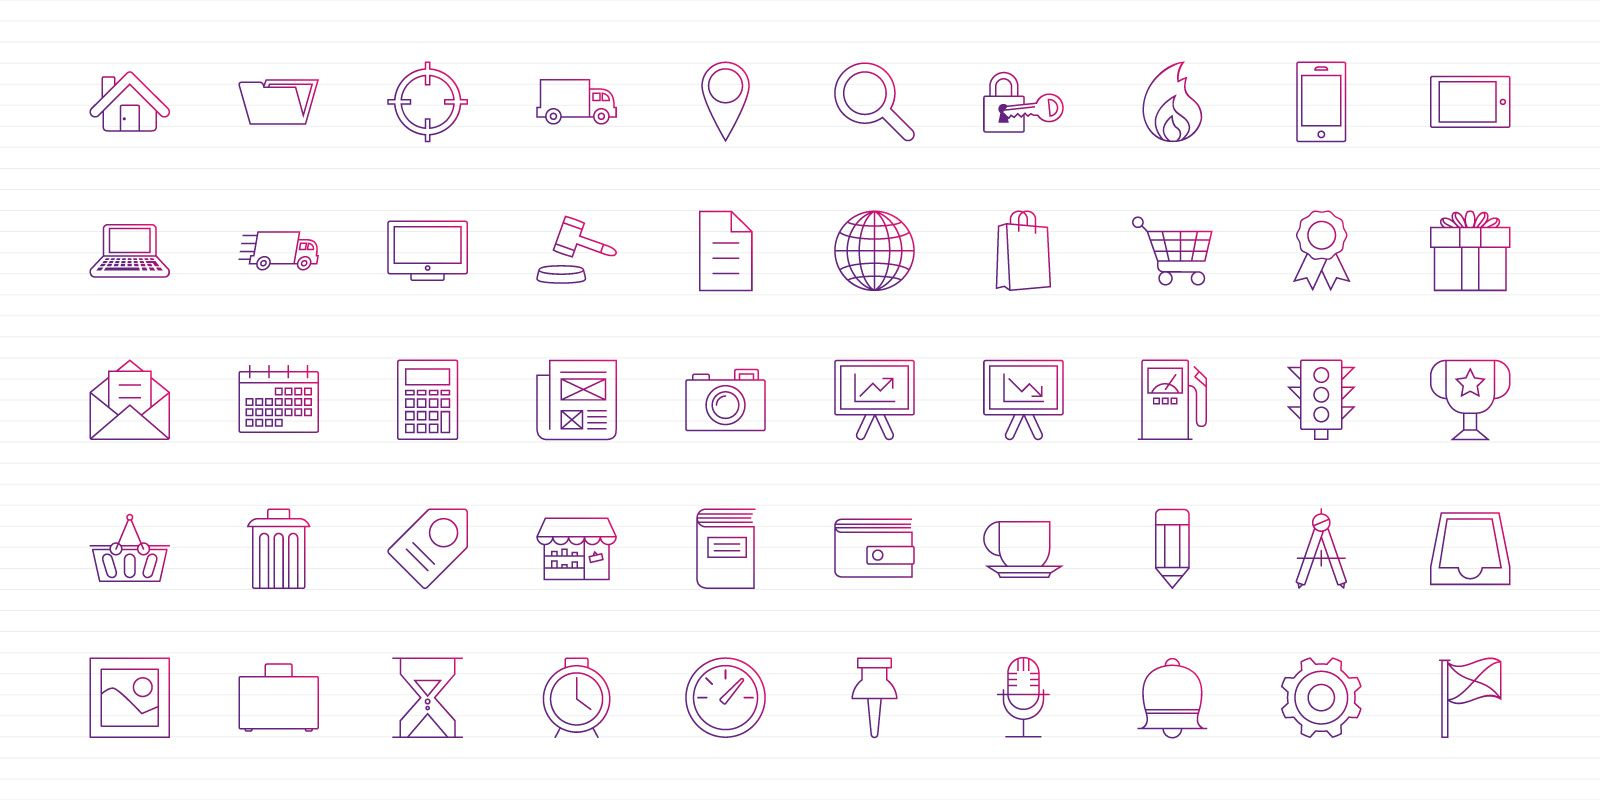 Purple Thin Lines - Vector Icon Pack Screenshot 3